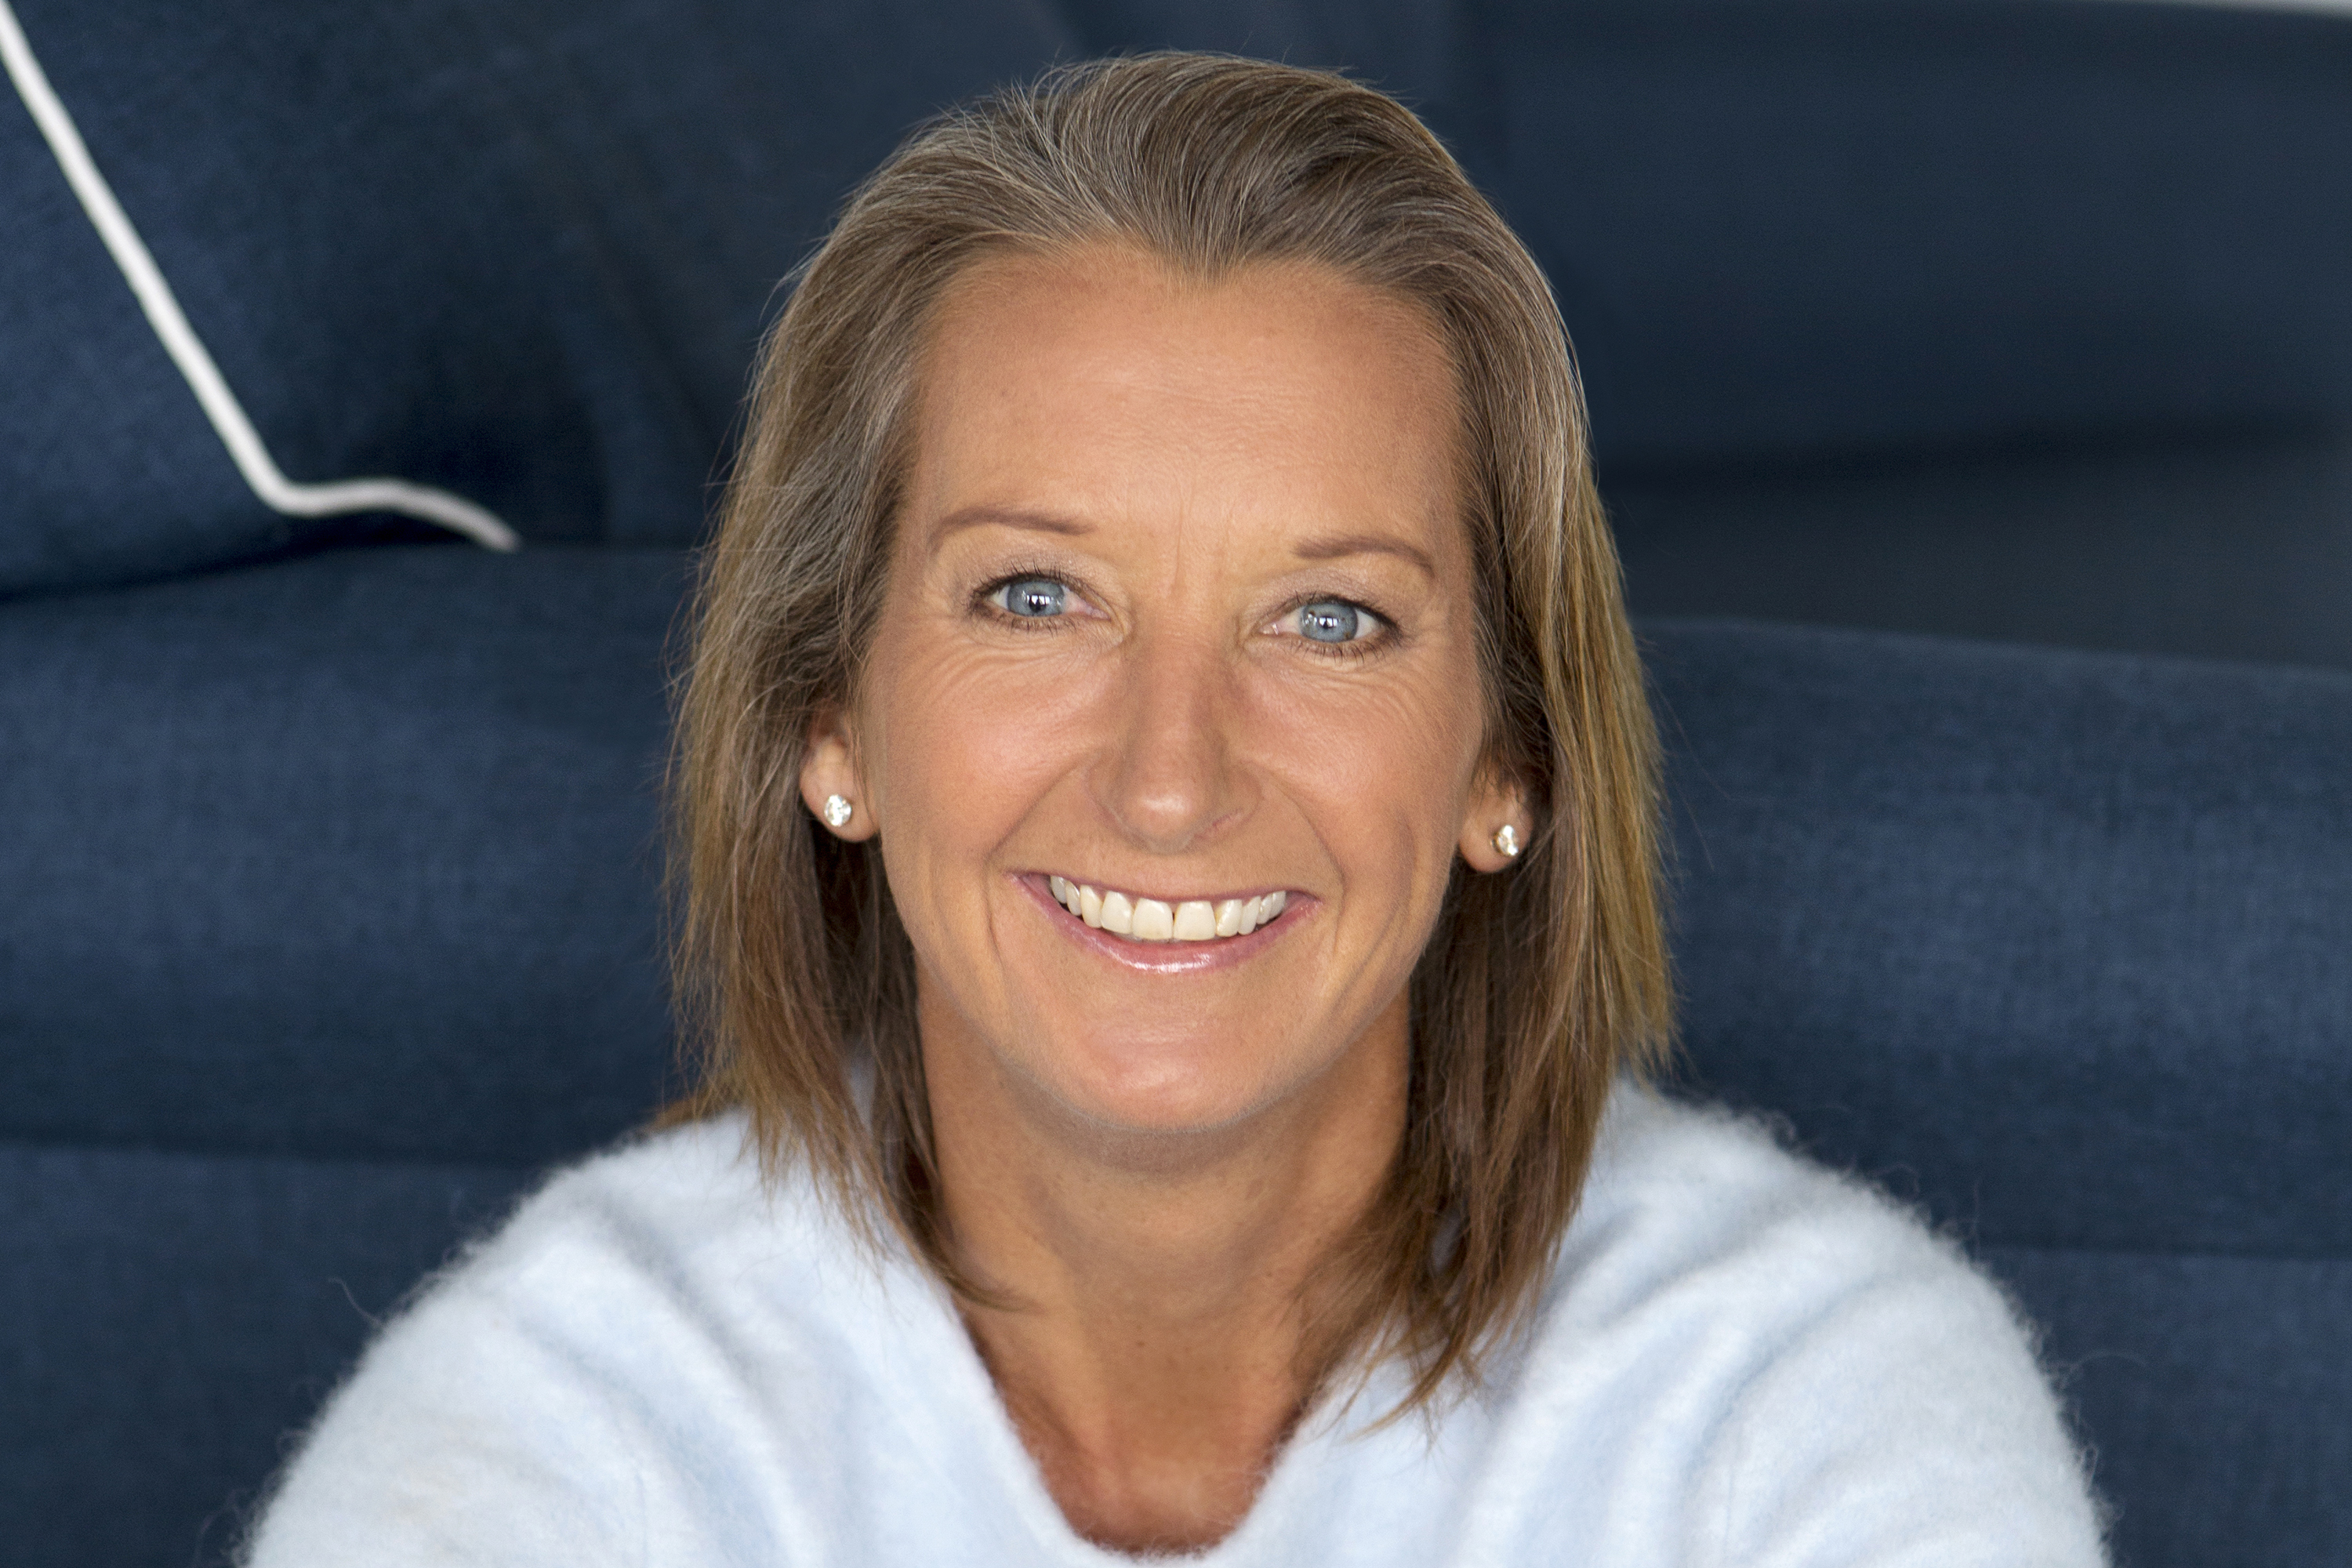 Speakers related to Brooke Hanson: Layne Beachley